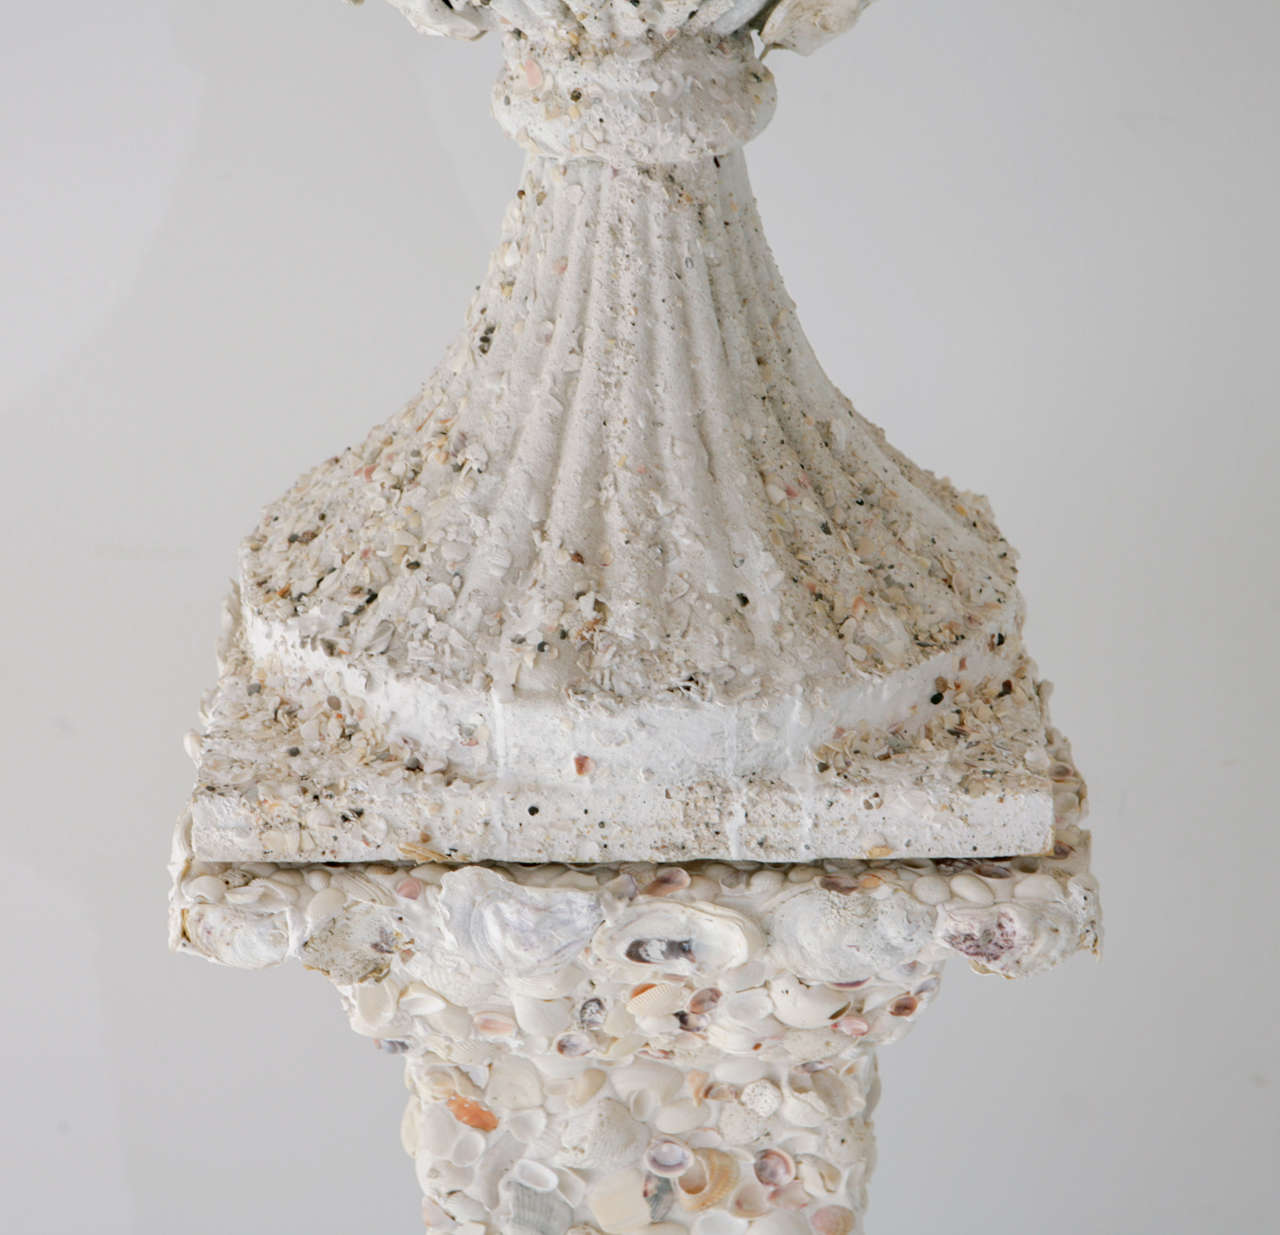 Grotto Style Shell Encrusted Urns on Pedestals 6